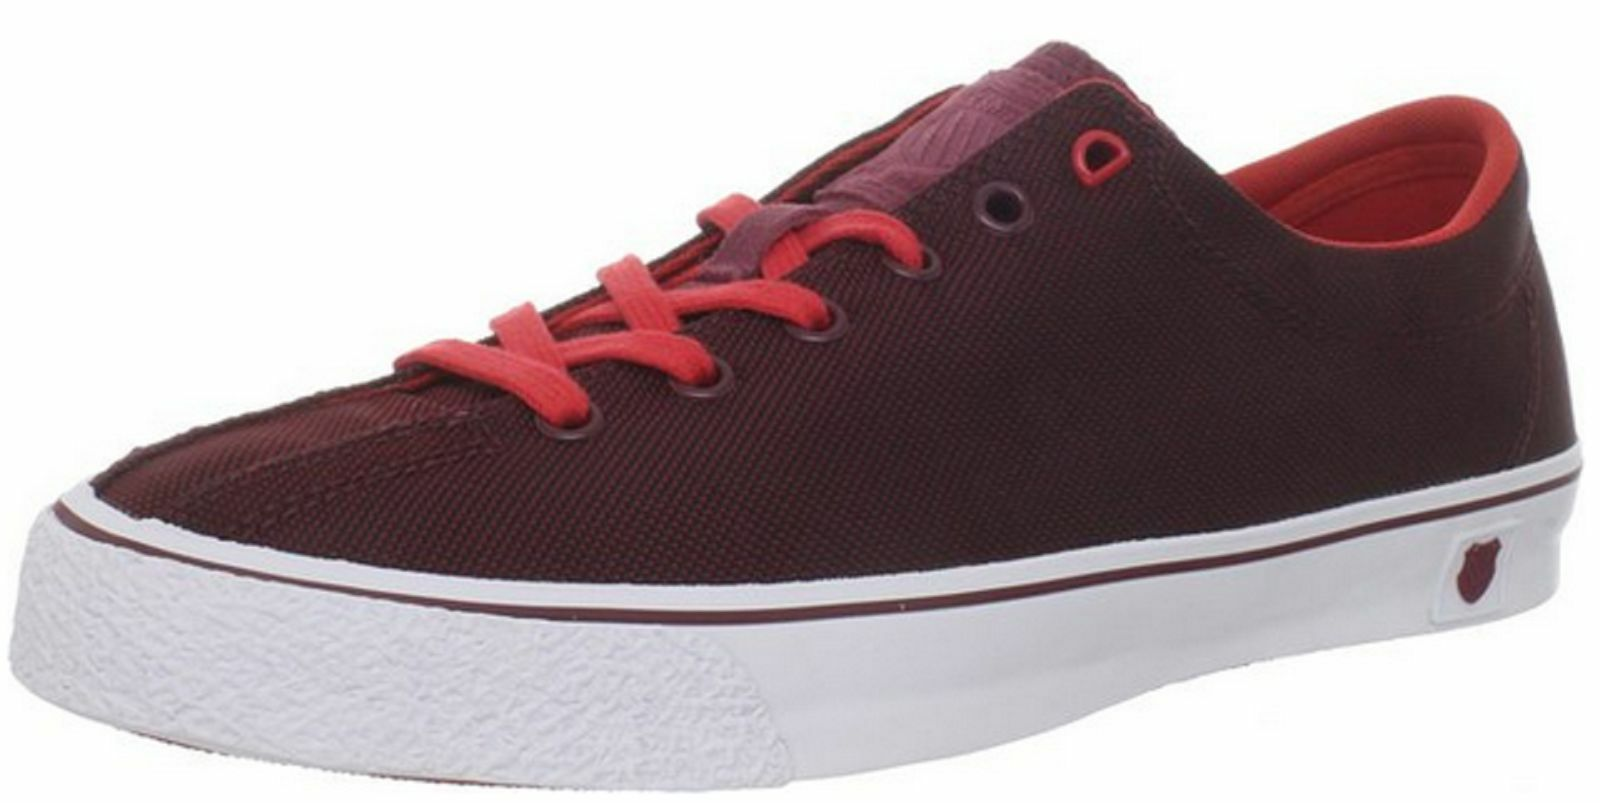 K SWISS 72925-634 CLEAN LAGUNA LOW Mn's (M) Red White Textile Lifestyle shoes